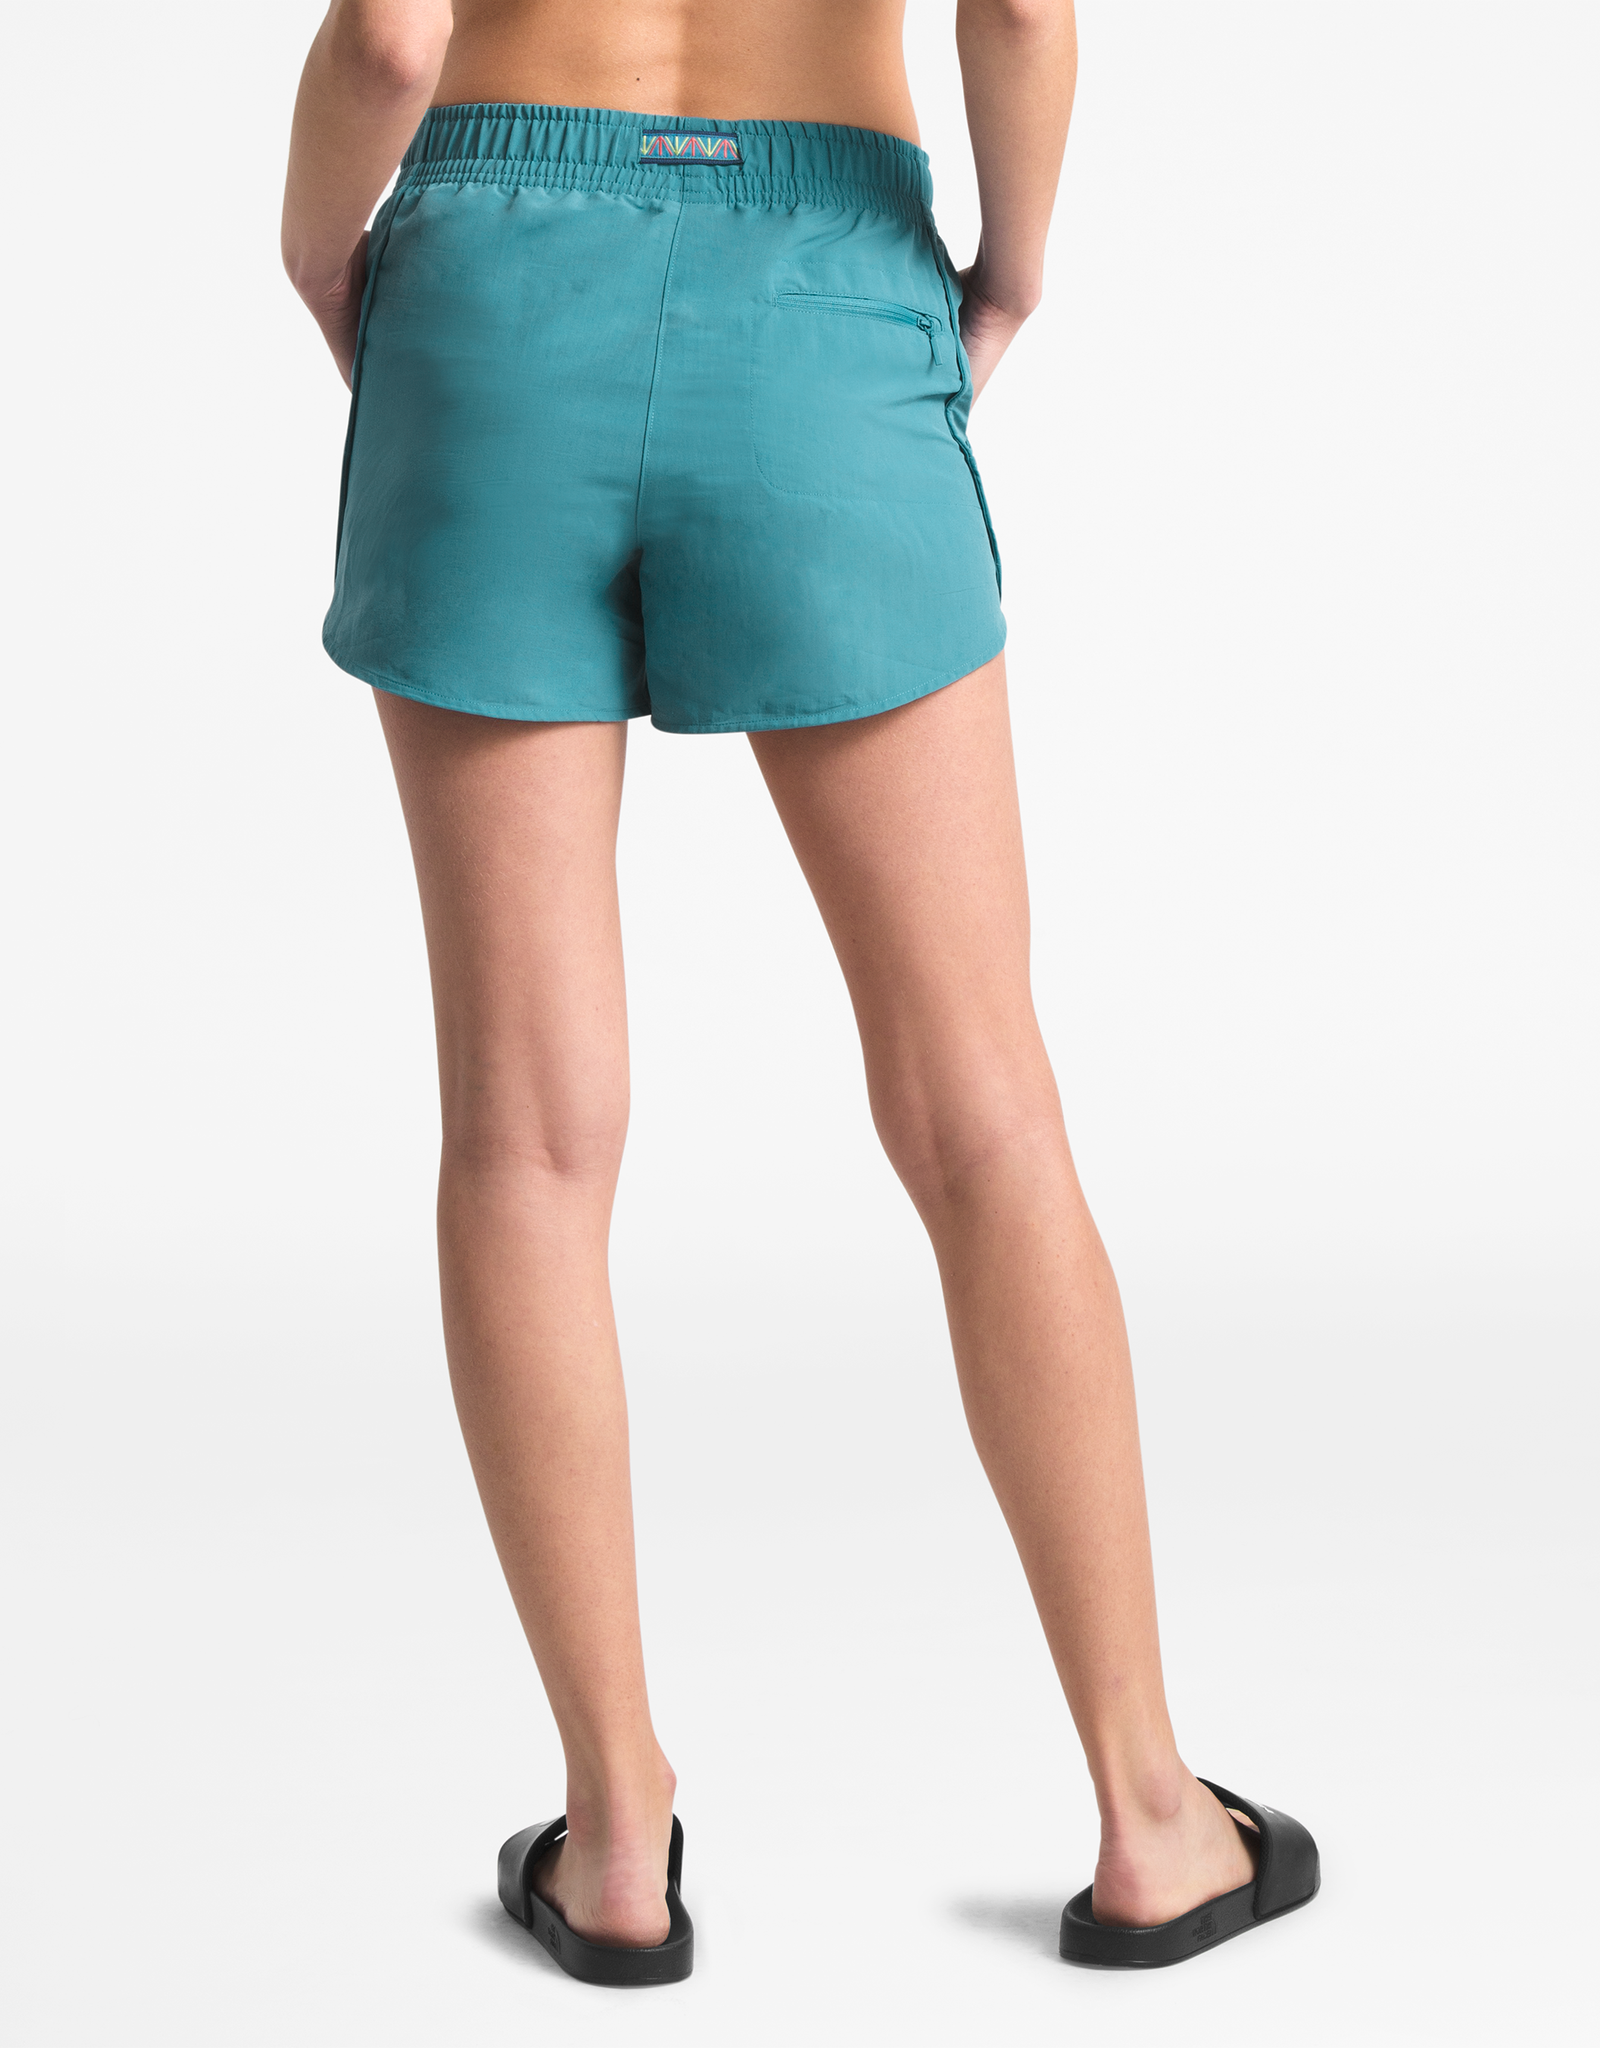 The North Face The North Face Women's Class V Hike Short 2.0 - S2019